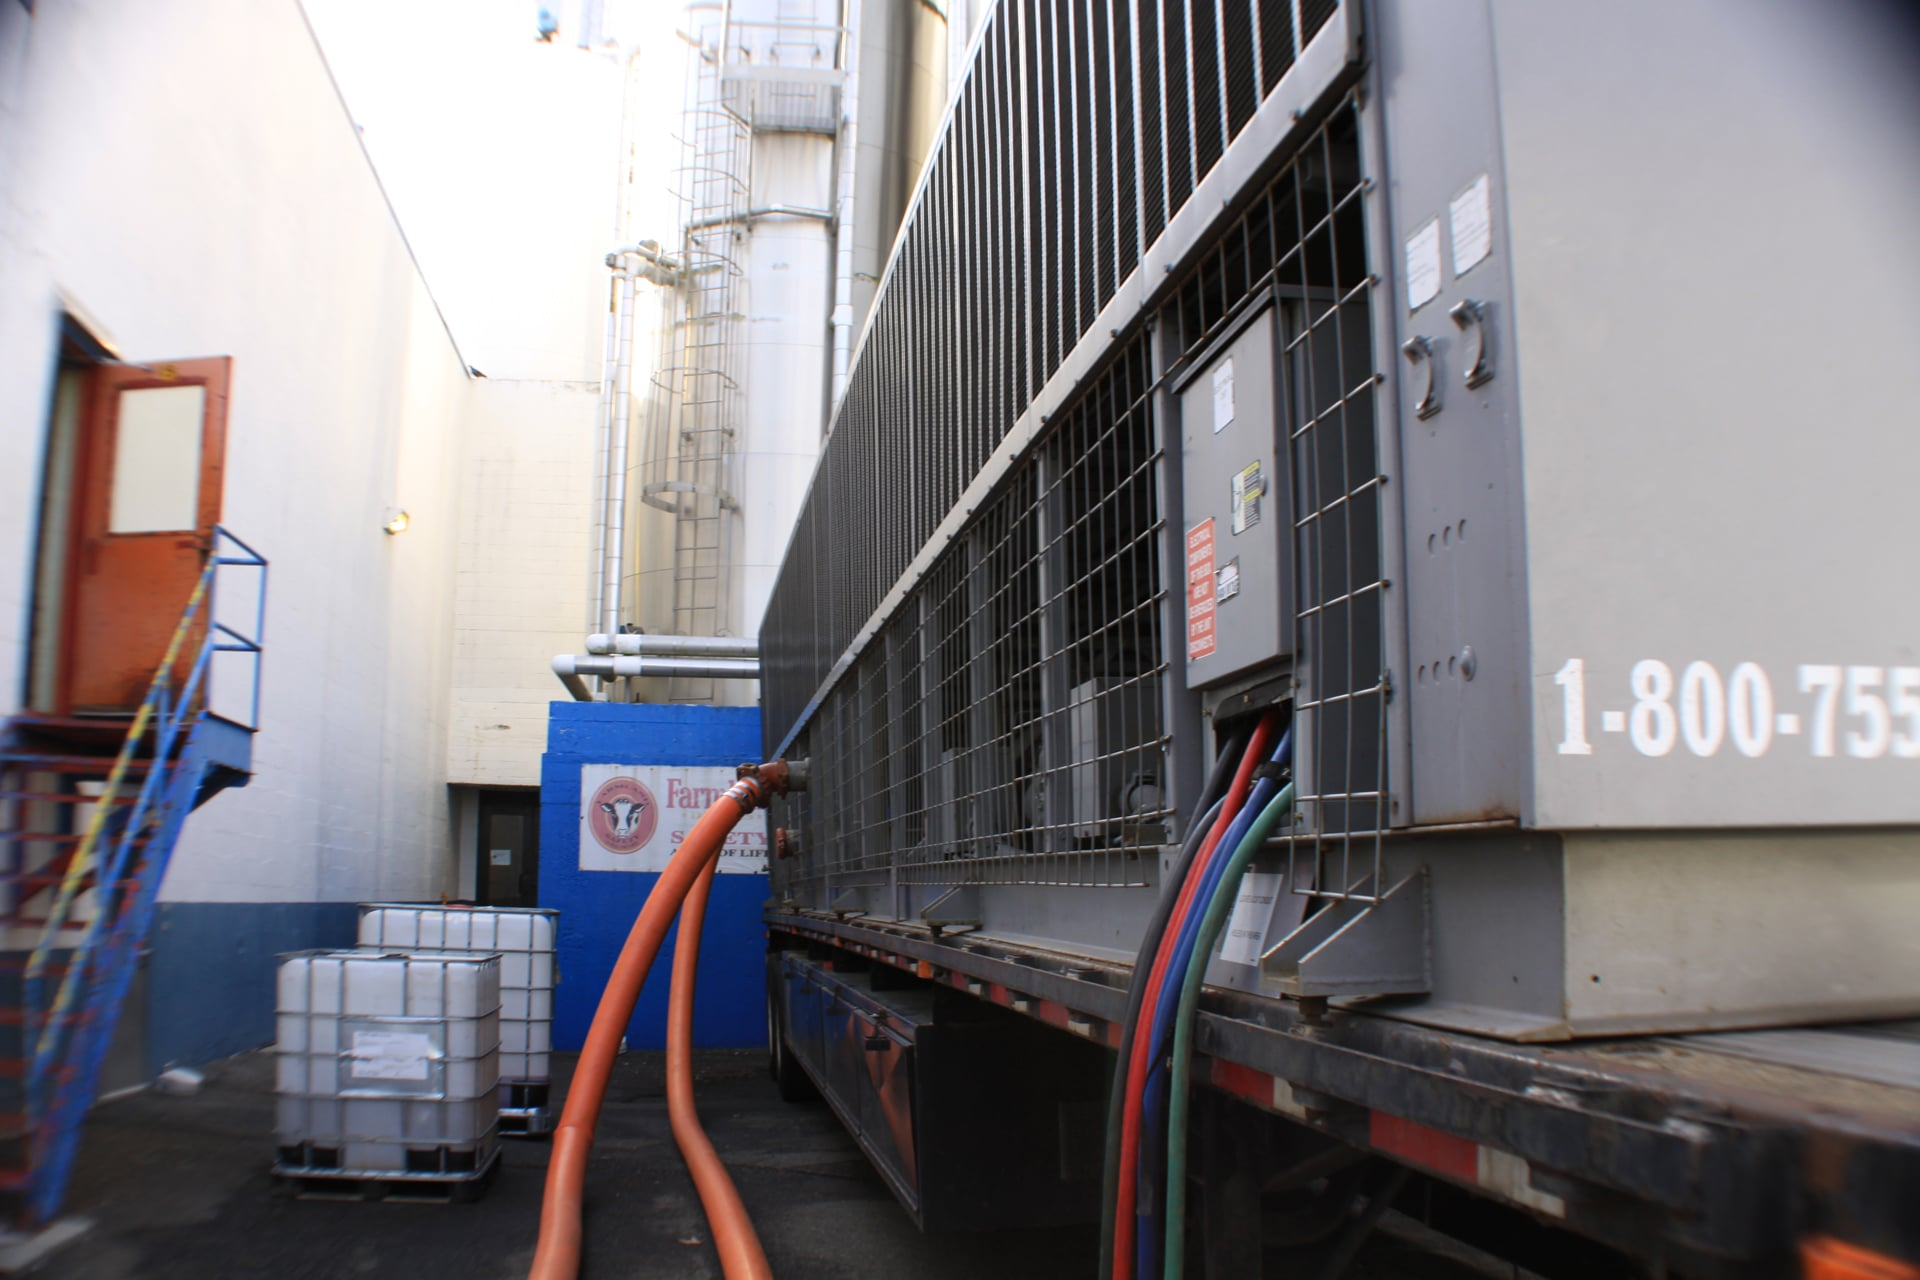 Temporary Chiller Somerset County NJ, Air Cooled Chiller Rental Somerset County NJ